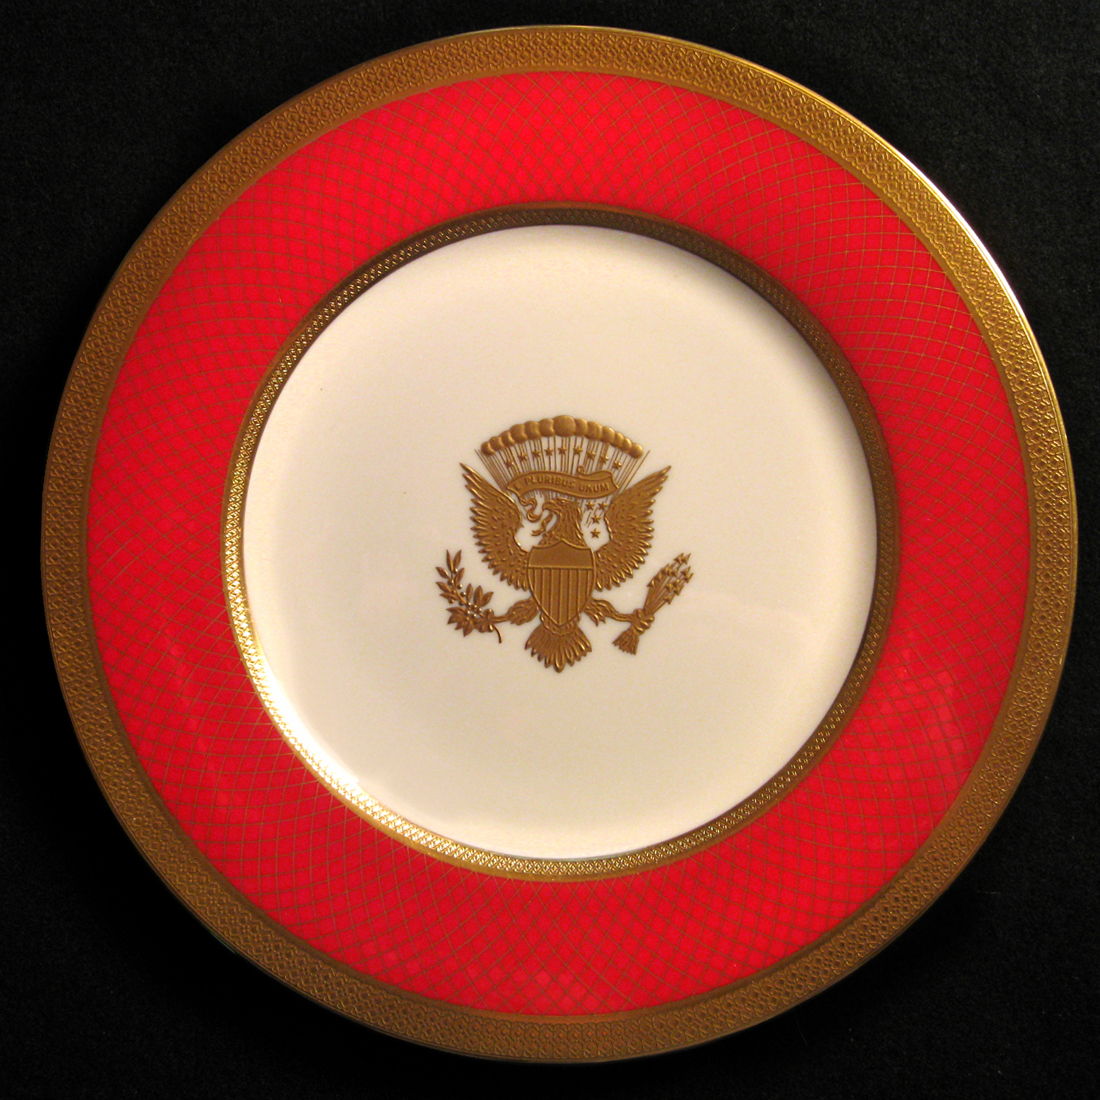 ronald-reagan-white-house-china-SERVICE PLATE